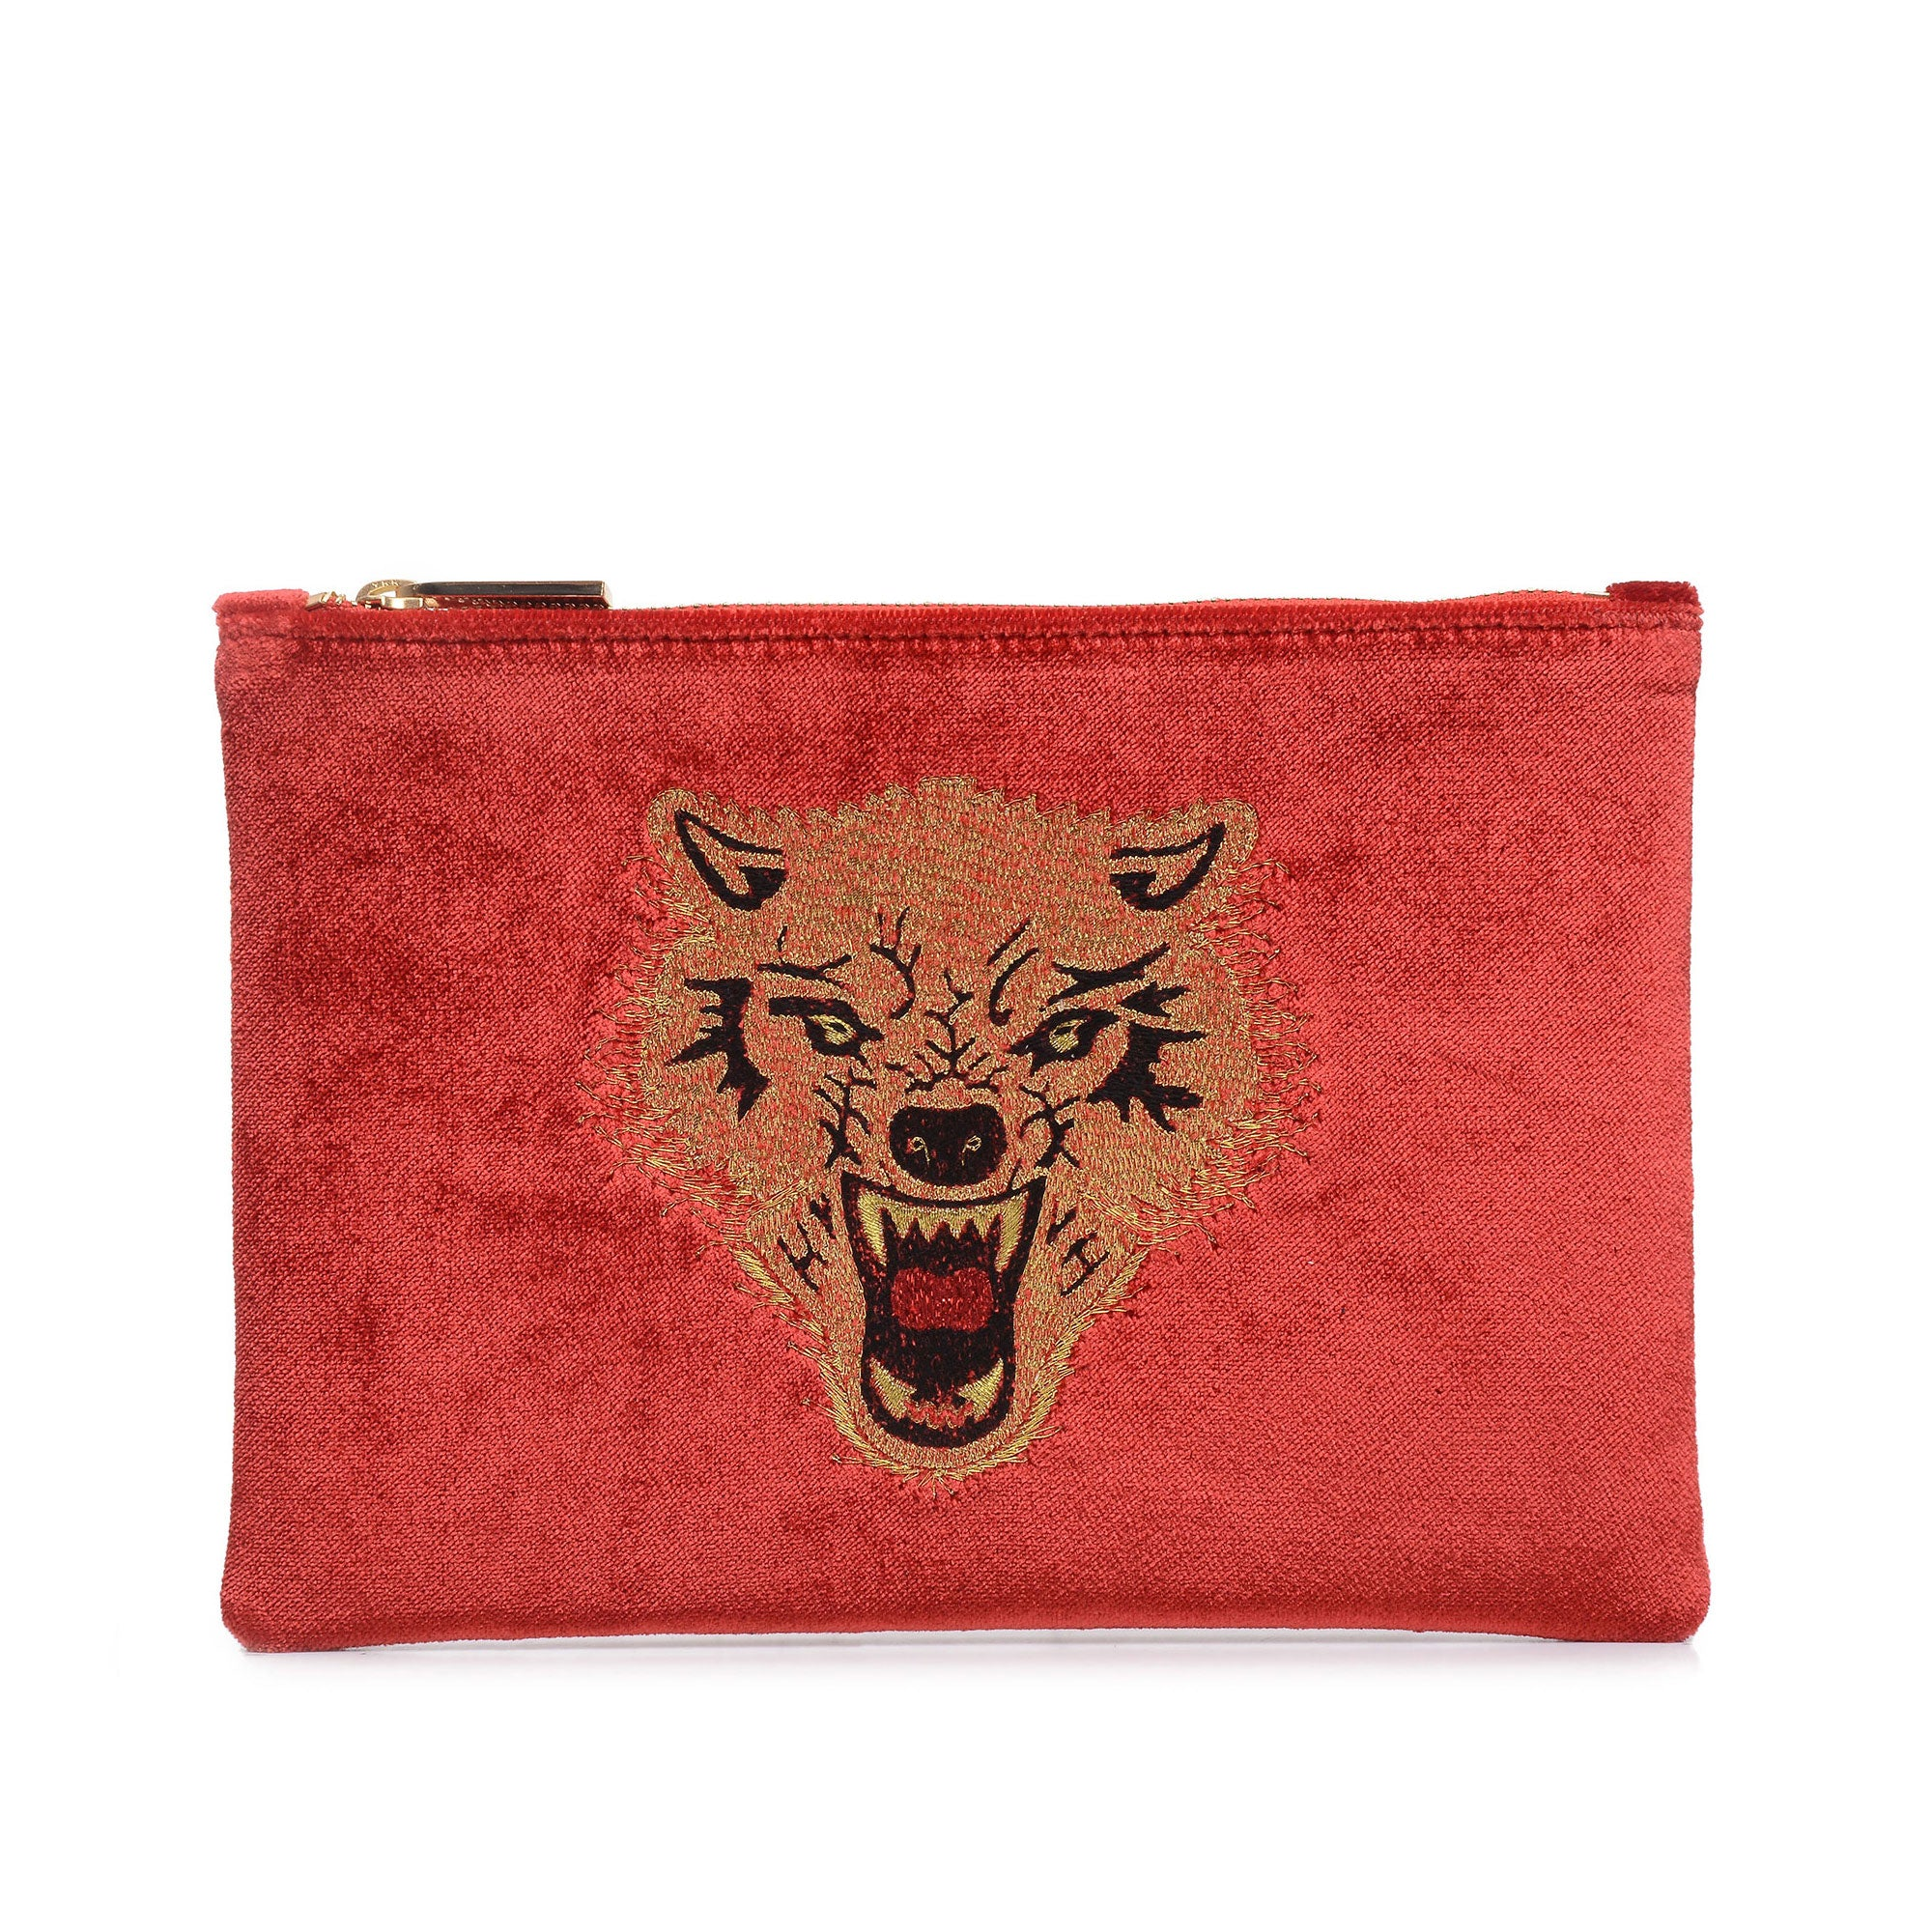 WOLF EMBROIDERED CLUTCH BAG